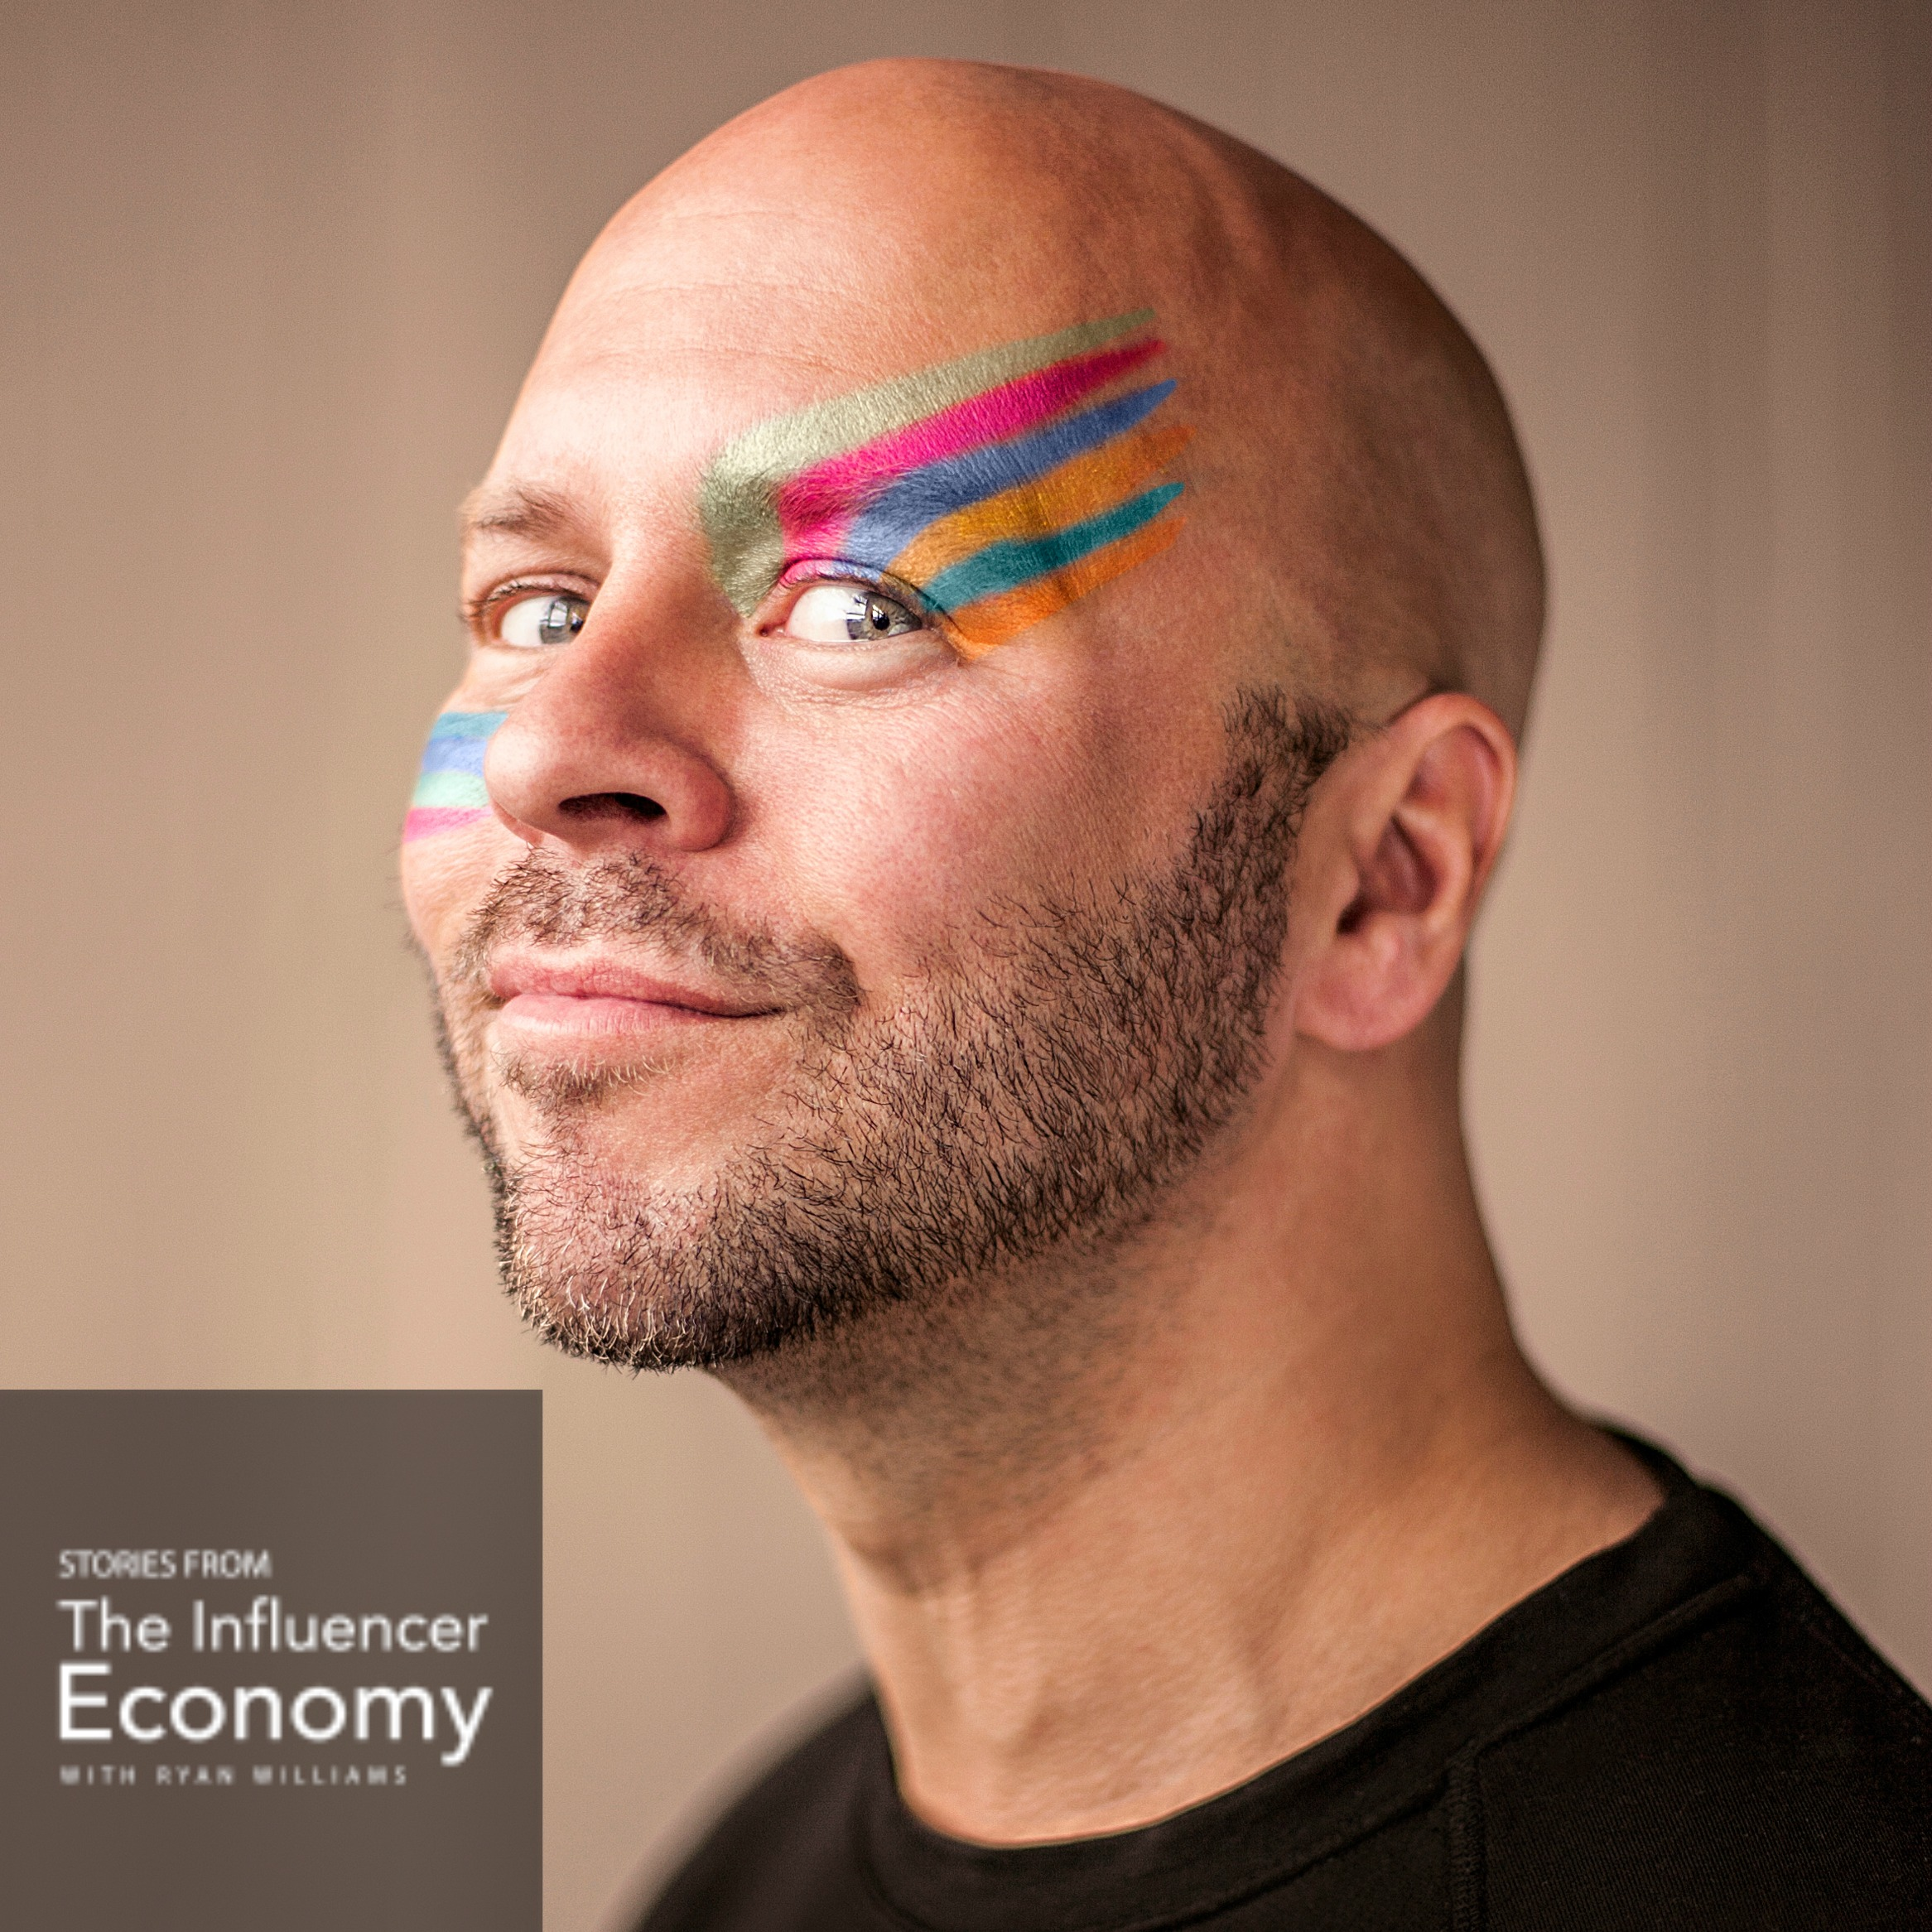 Derek Sivers Influencer Economy with Ryan Williams